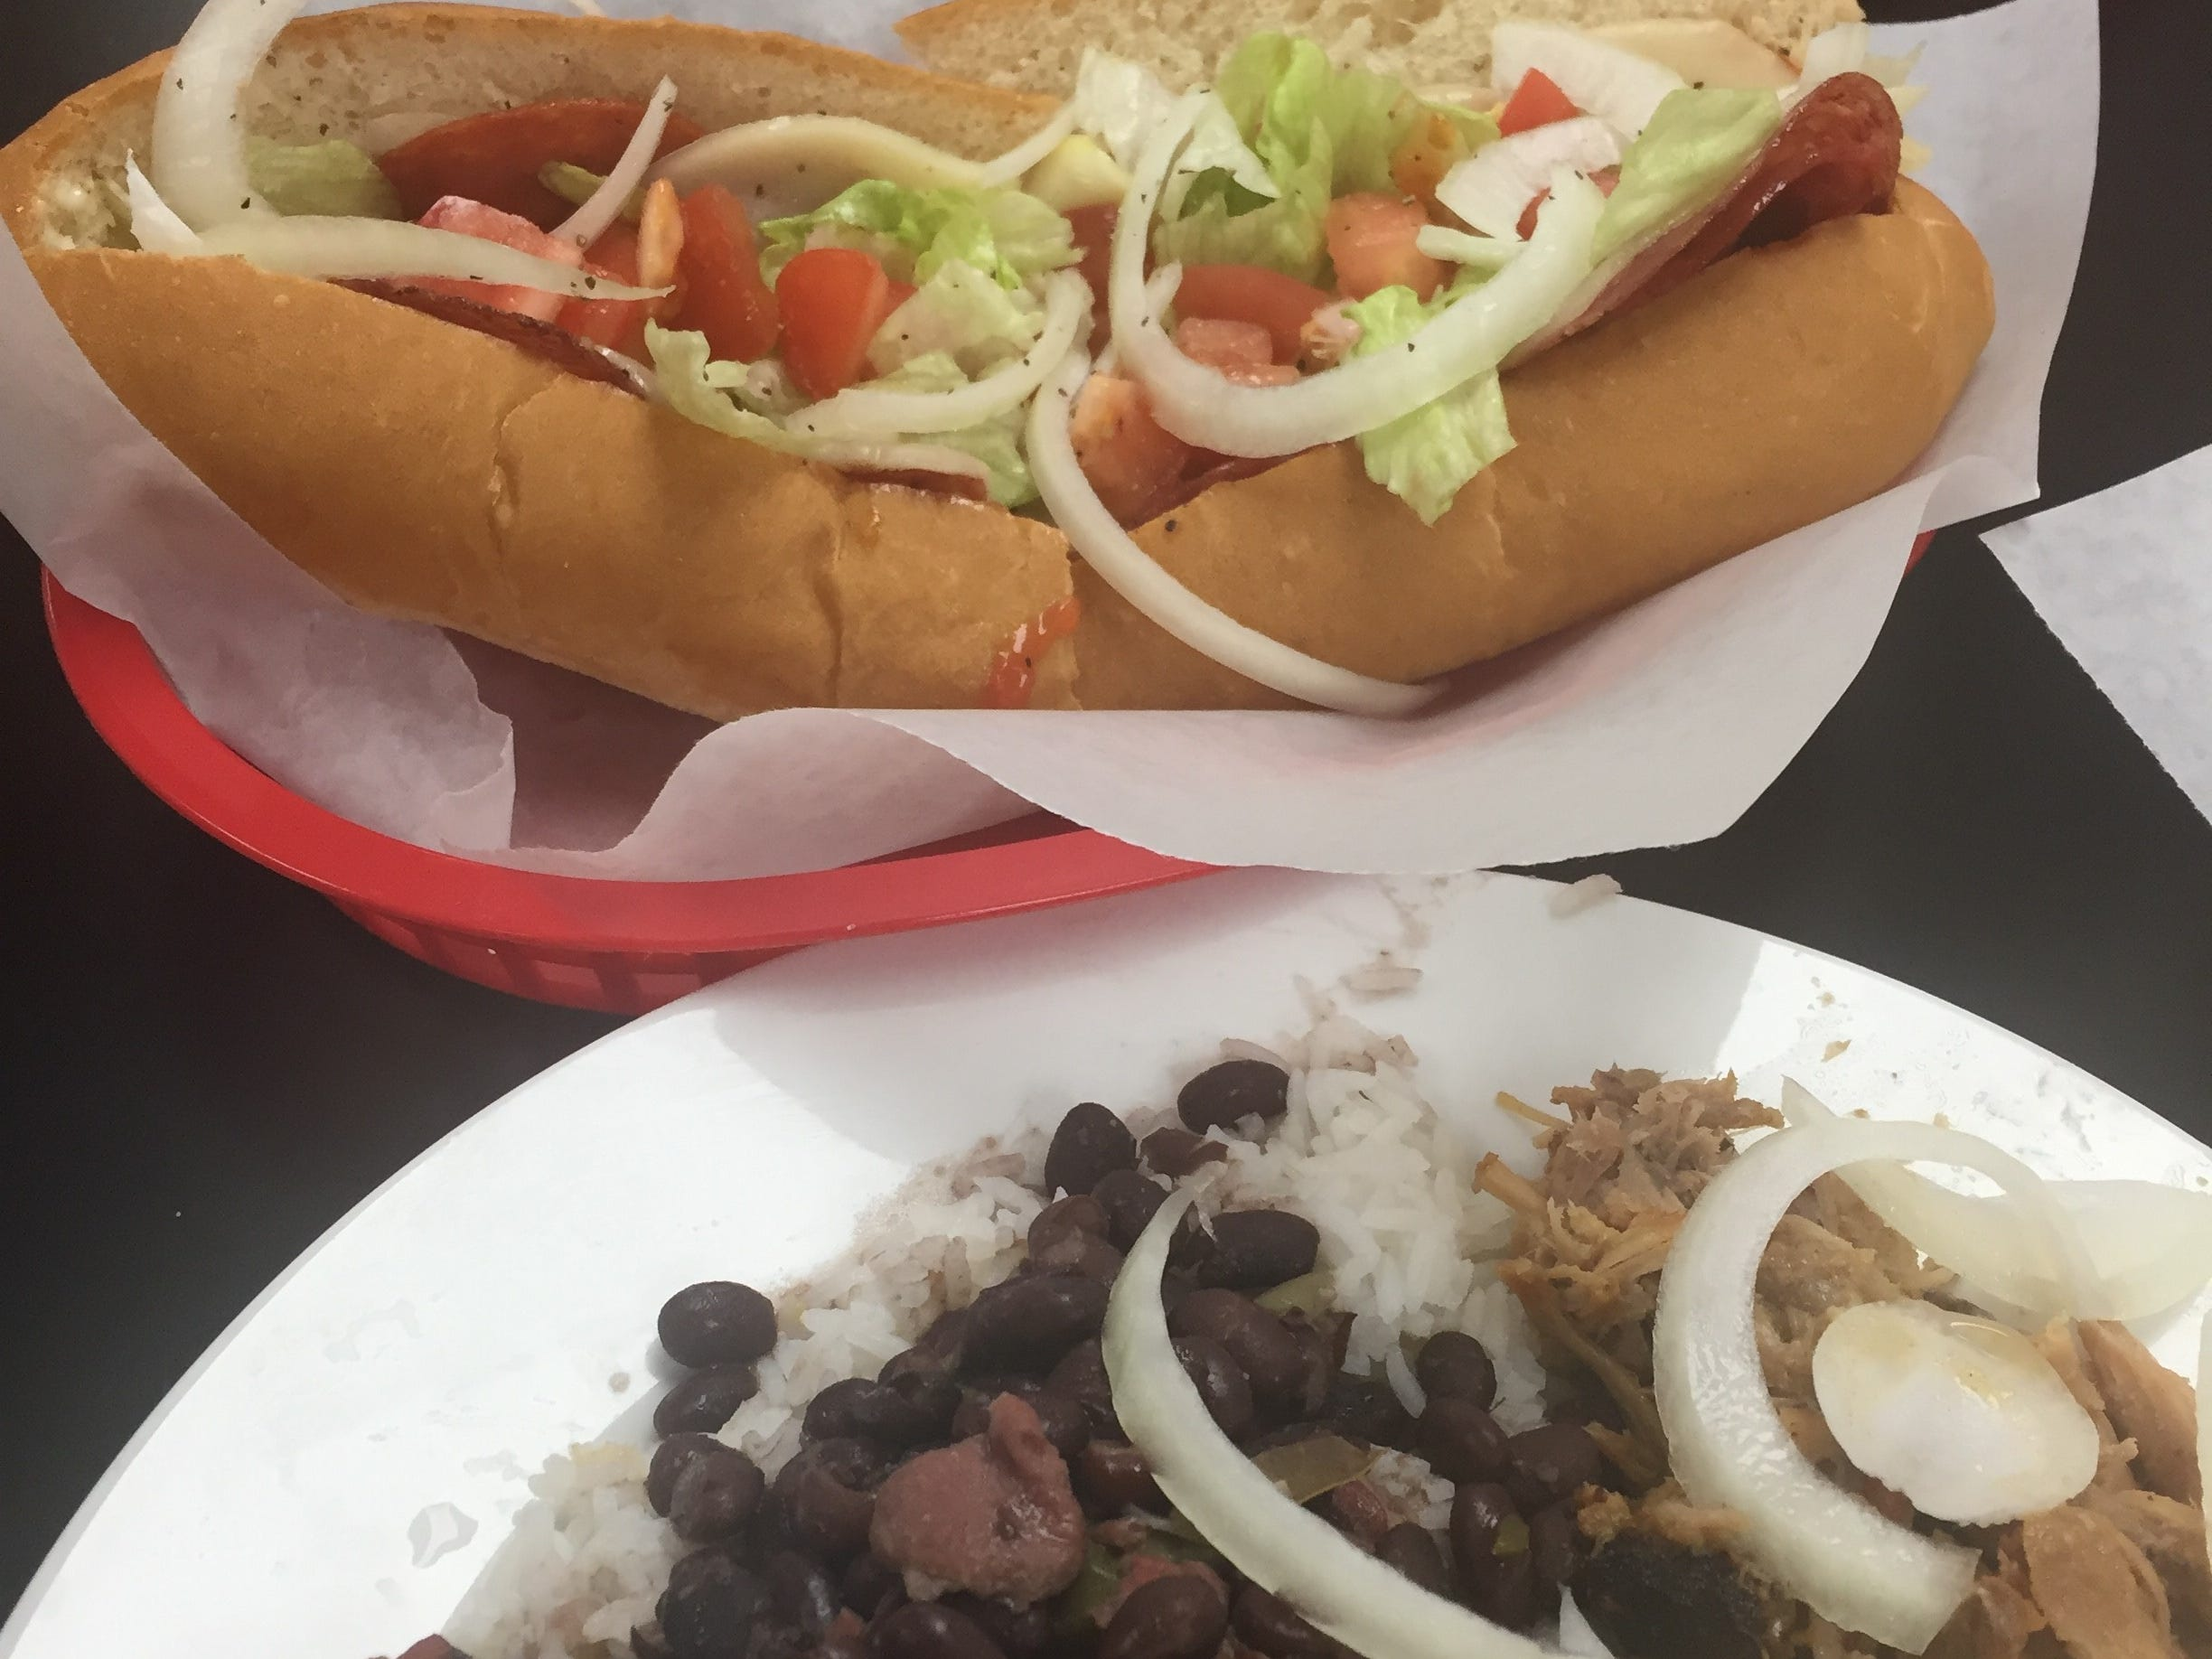 Two options at Halls Deli Cuban Café are a platter made with marinated pork and served with white rice, a choice of beans and a choice of plantains, front, and a grilled Italian sub.